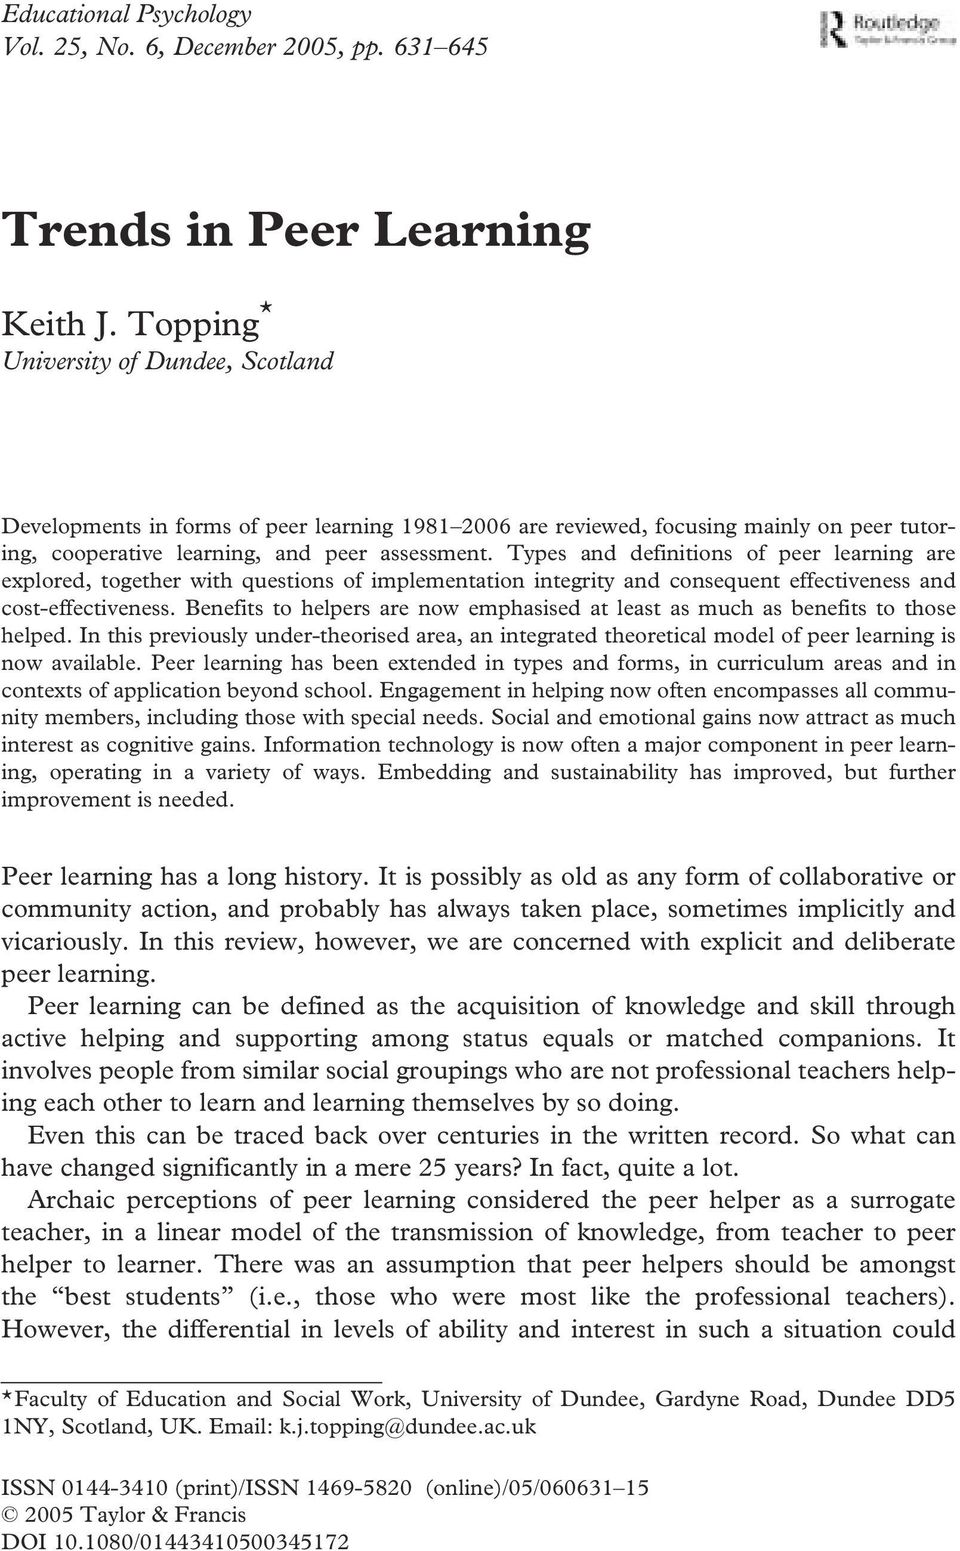 uk (0) and & 1382 Article Francis KeithTopping (print)/0144-3410 Psychology & 464000 Social Ltd 2005 LtdResearch, (online) Faculty of Education & Social WorkUniversity of DundeeGardyne RoadDundeeDD5